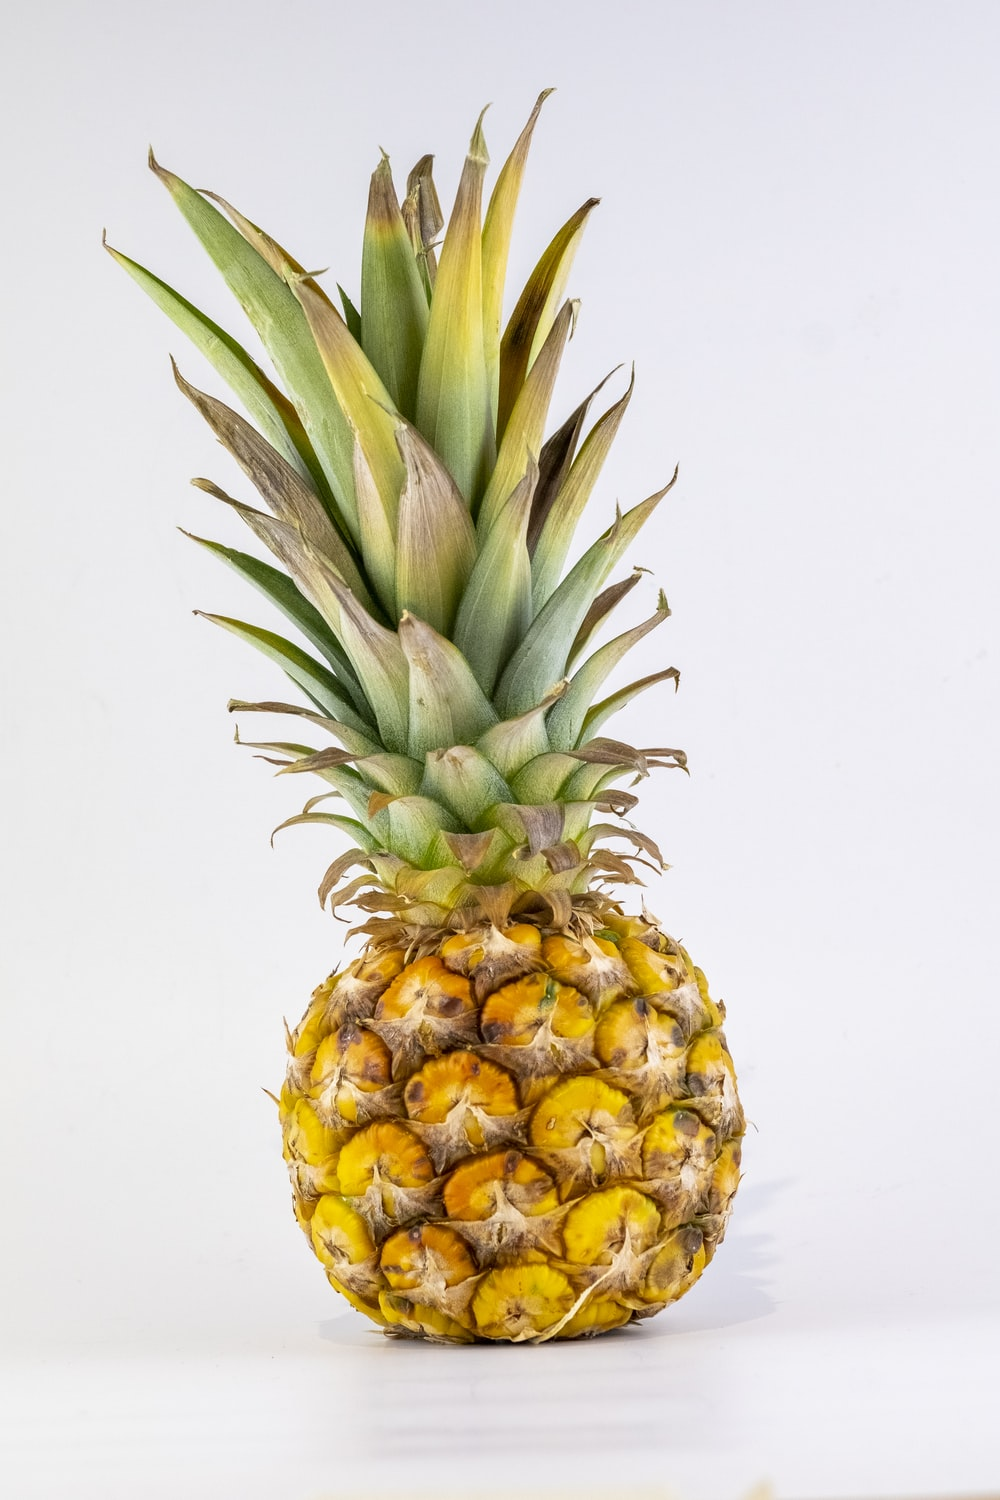 pineapple fruit on white table